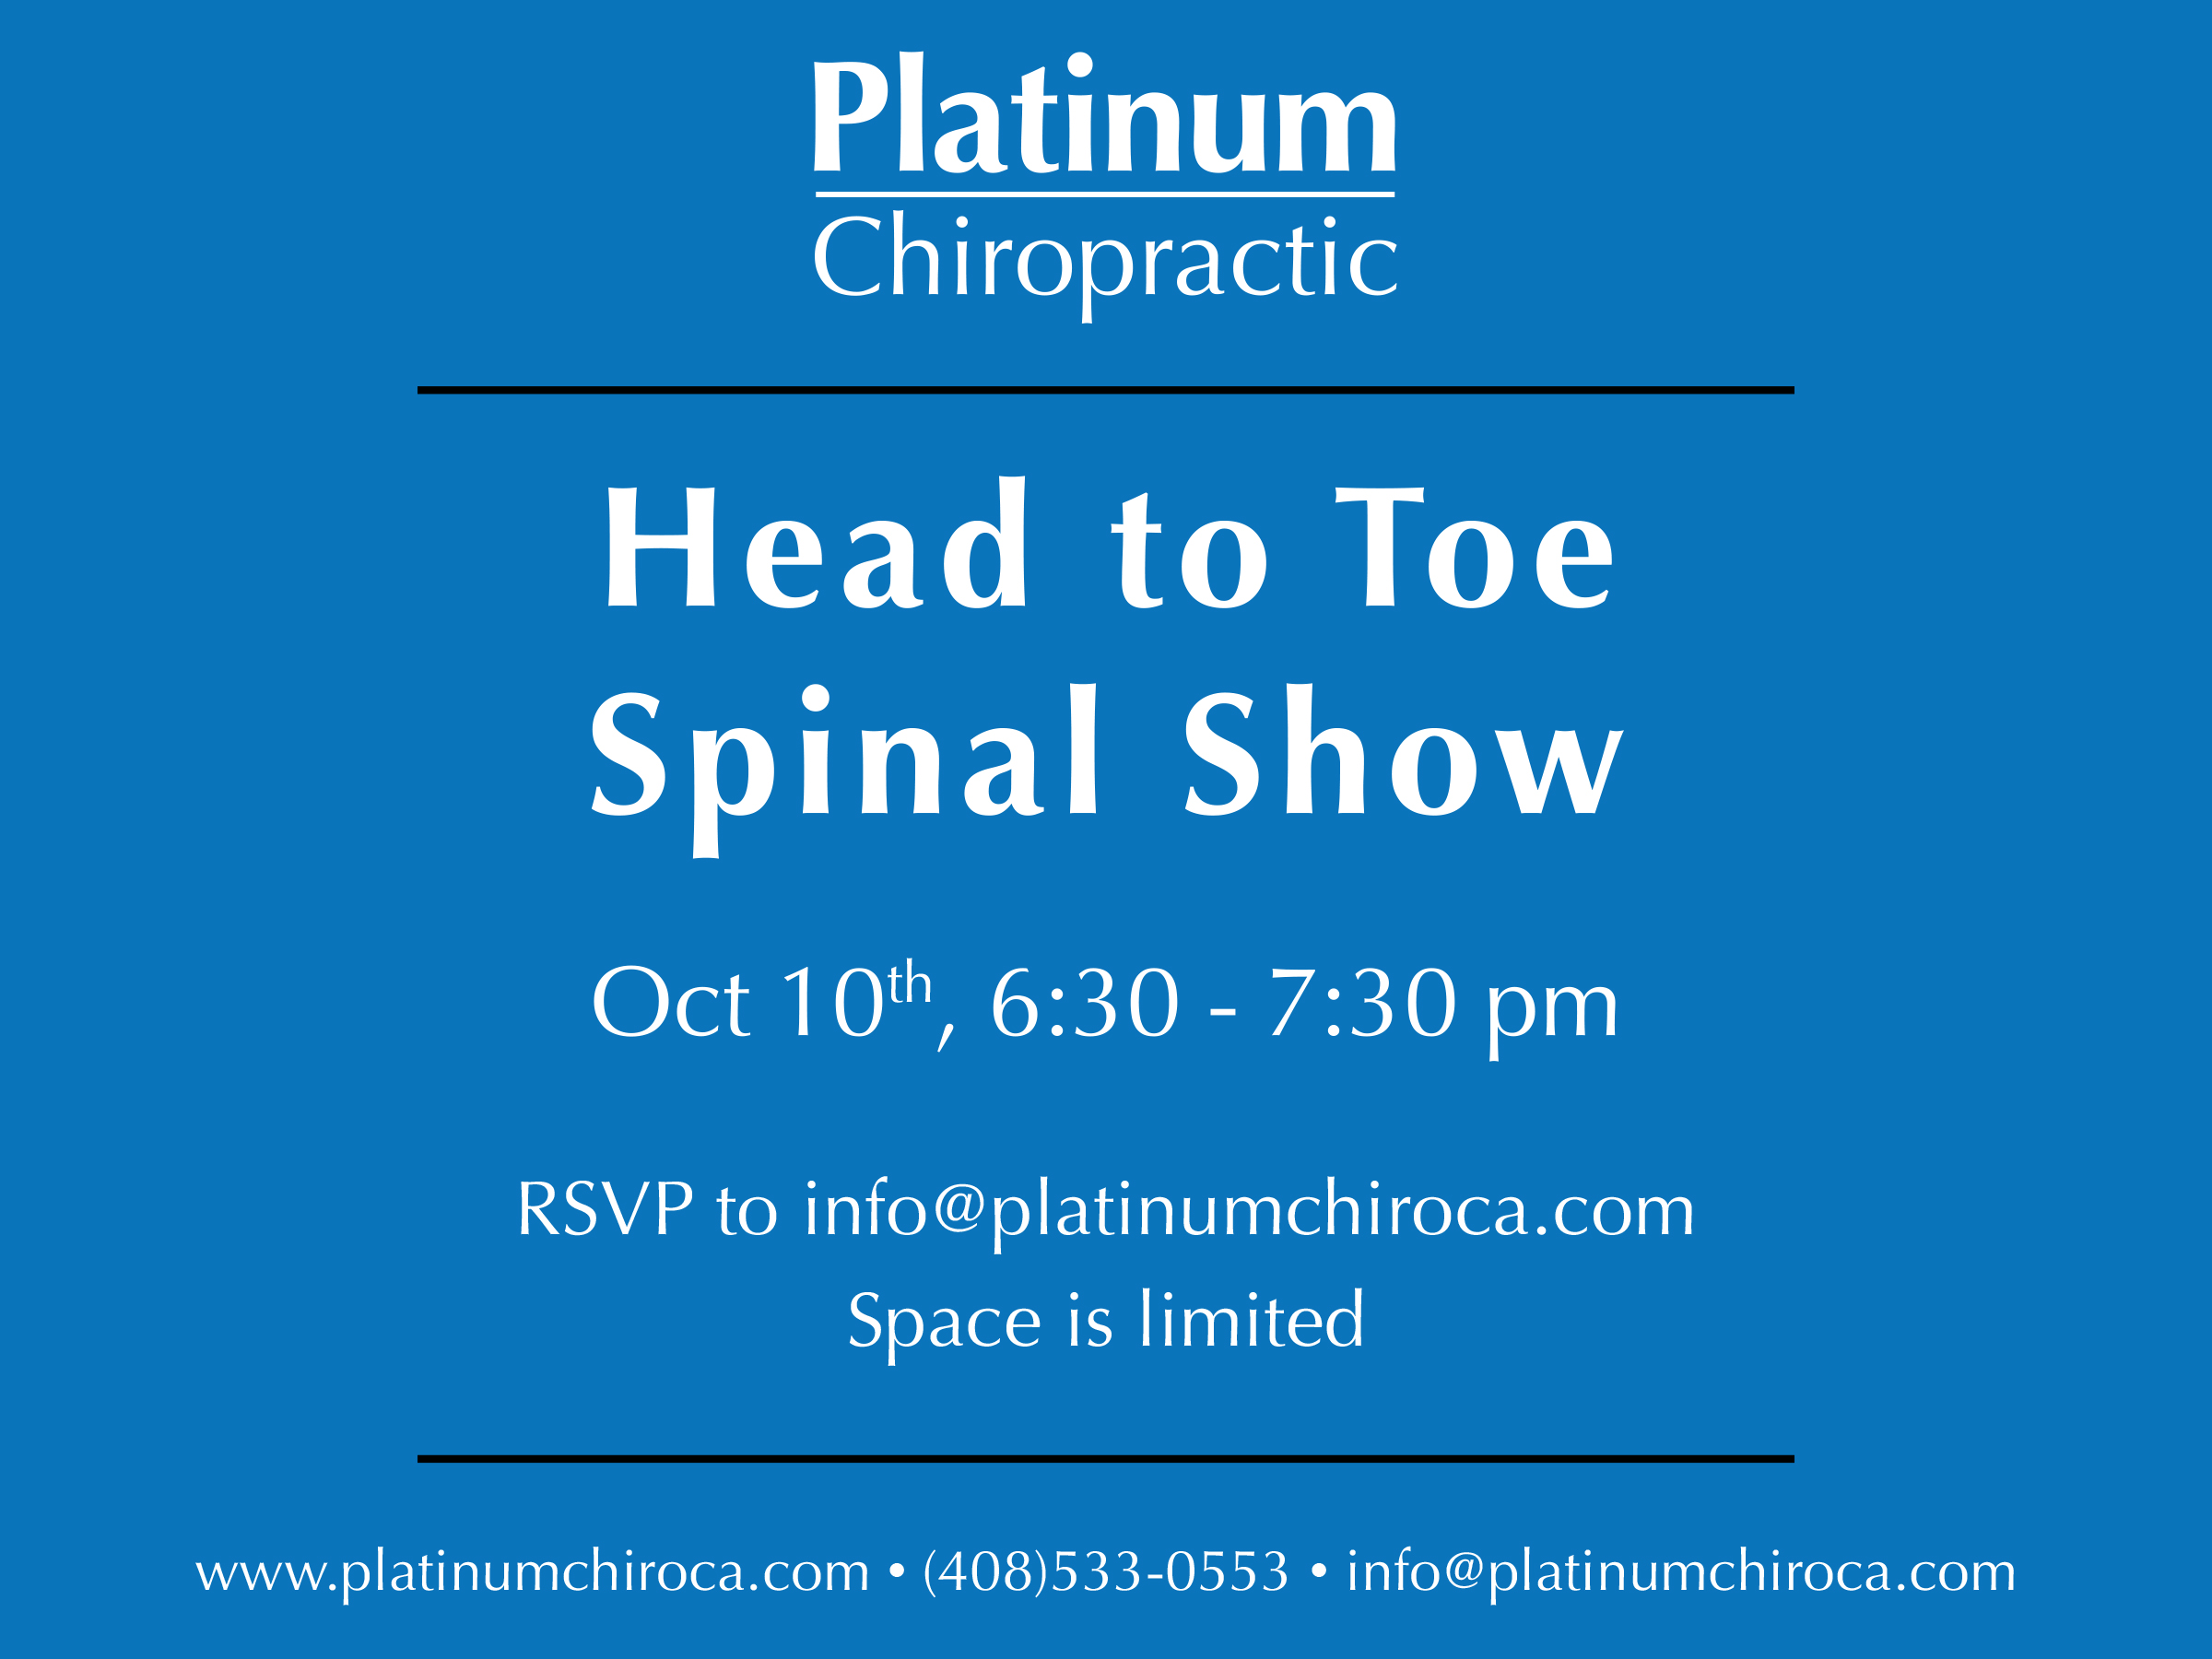 Prevent Injuries causing back pain, neck pain, disk herniations, sciatica, headaches, and so much more.